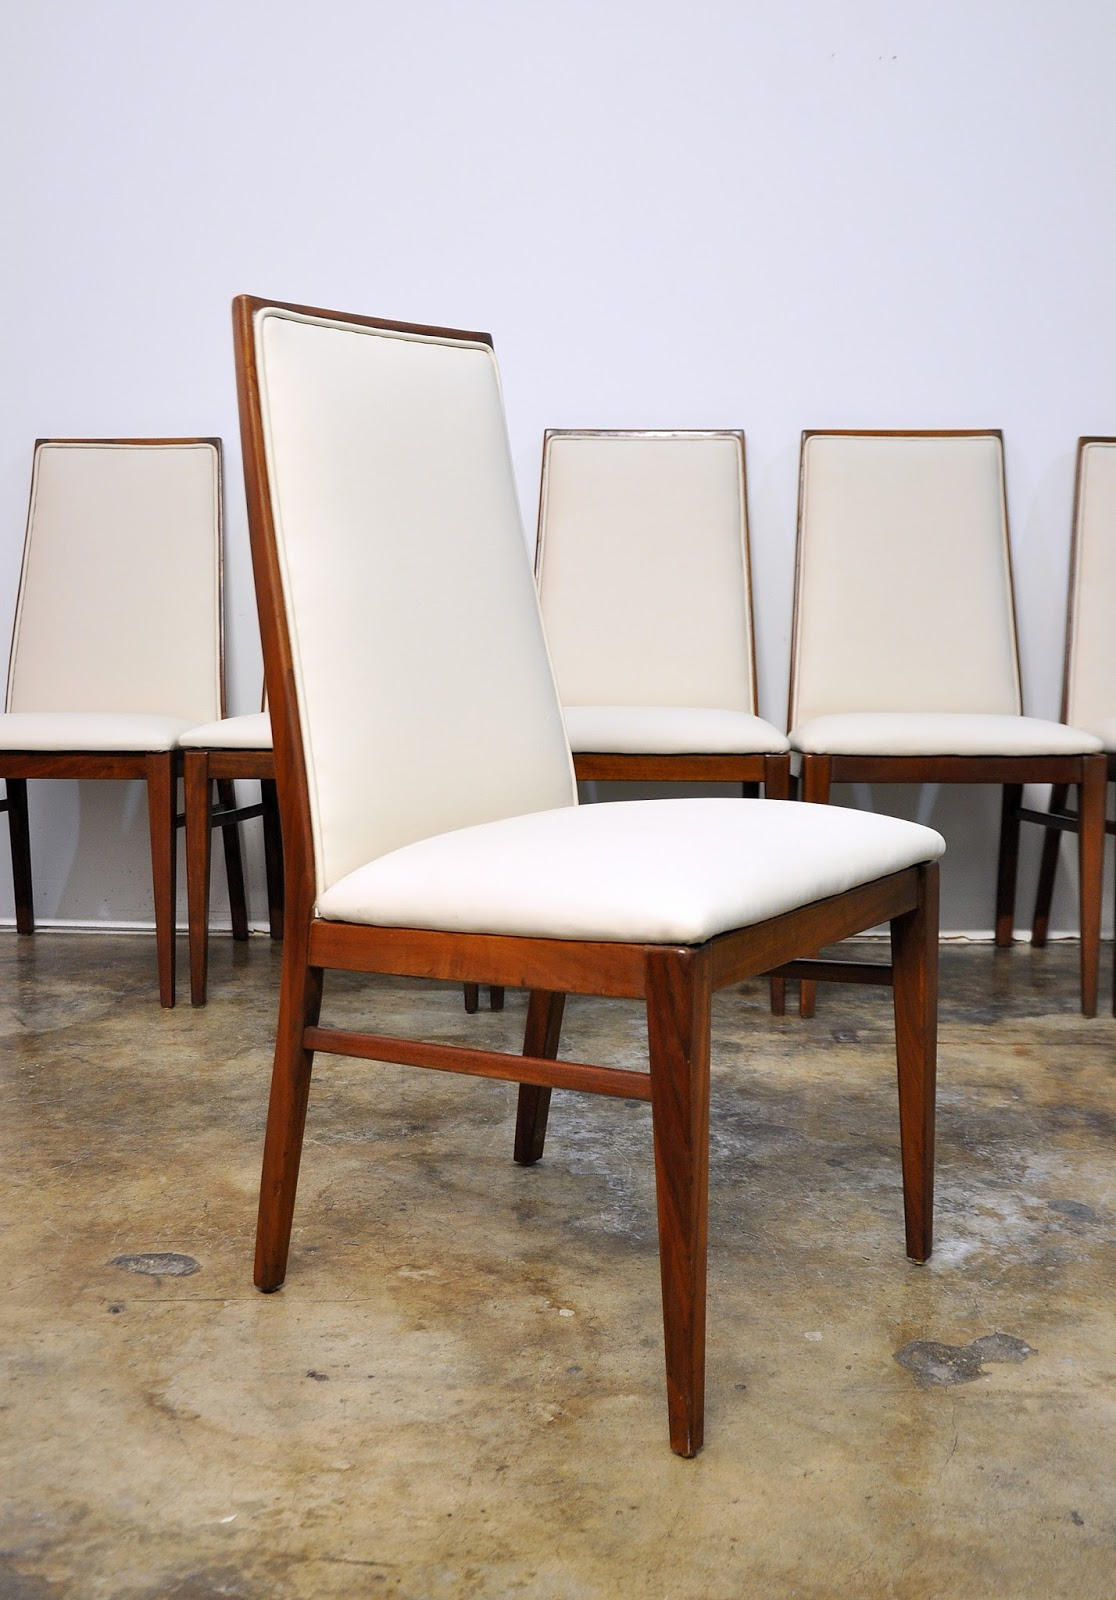 SELECT MODERN Set of 6 Milo Baughman Dining Chairs